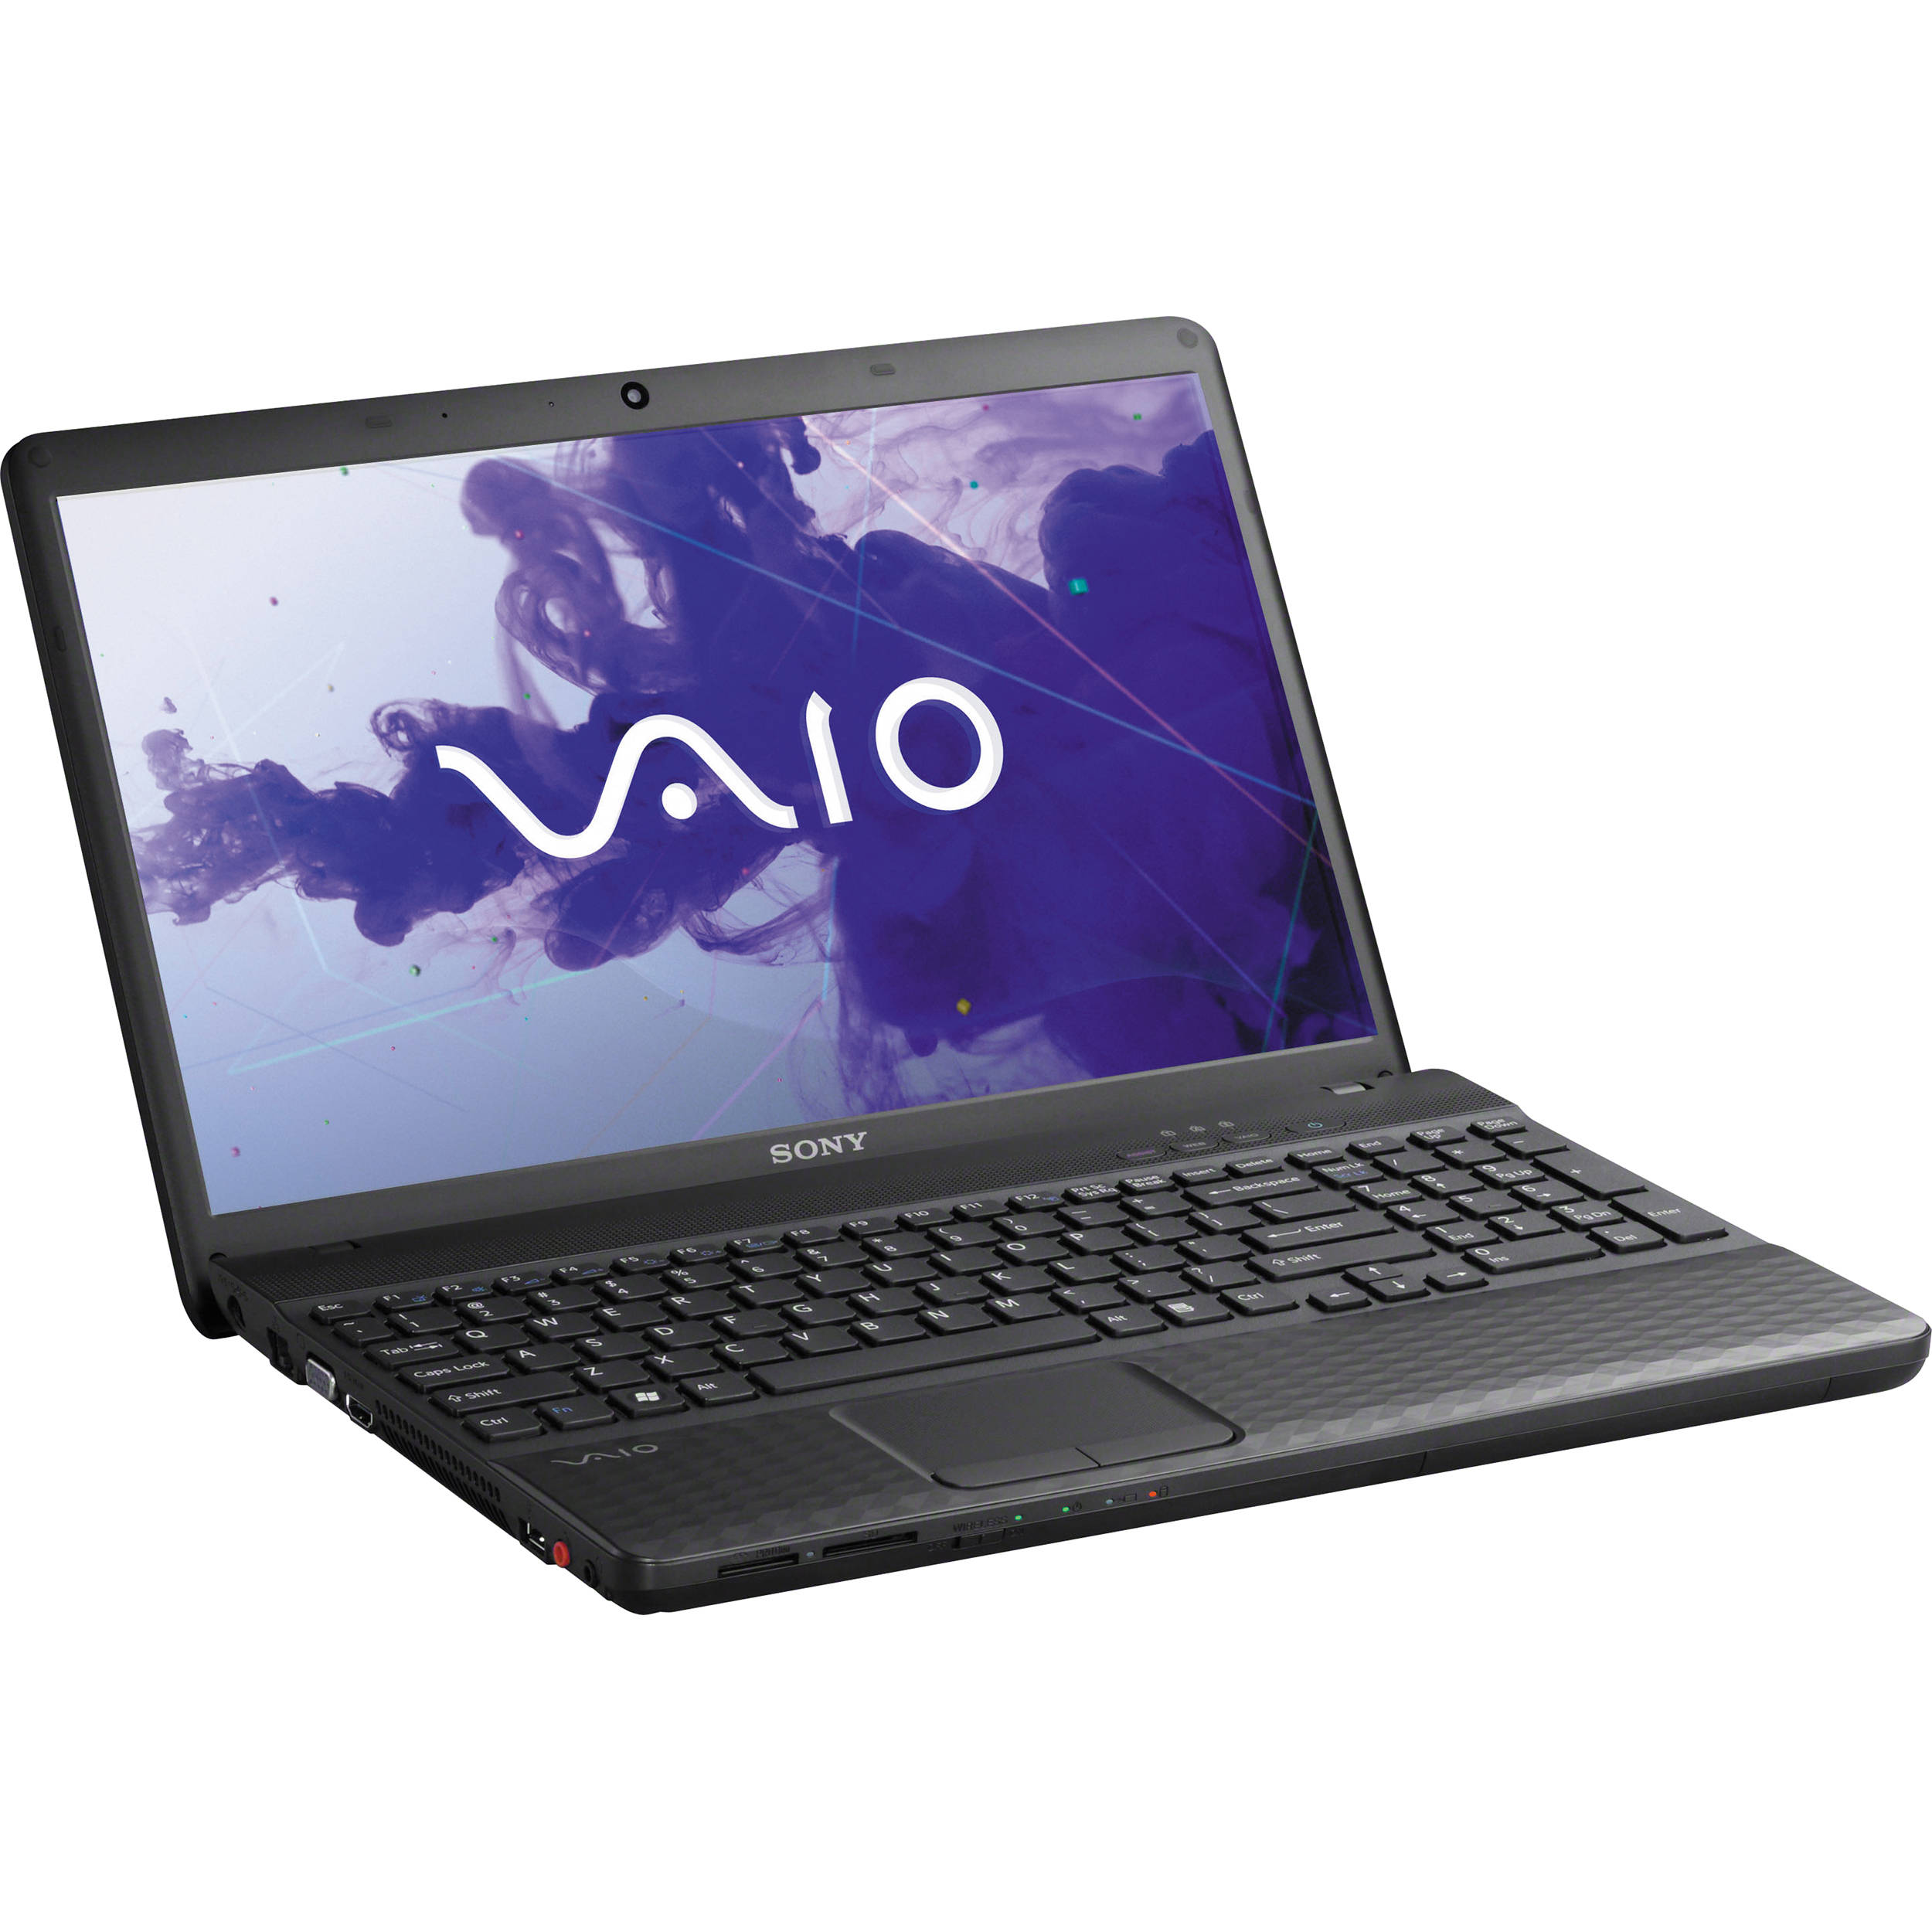 SONY VAIO VPCEF34FX TOUCHPAD SETTINGS DRIVERS